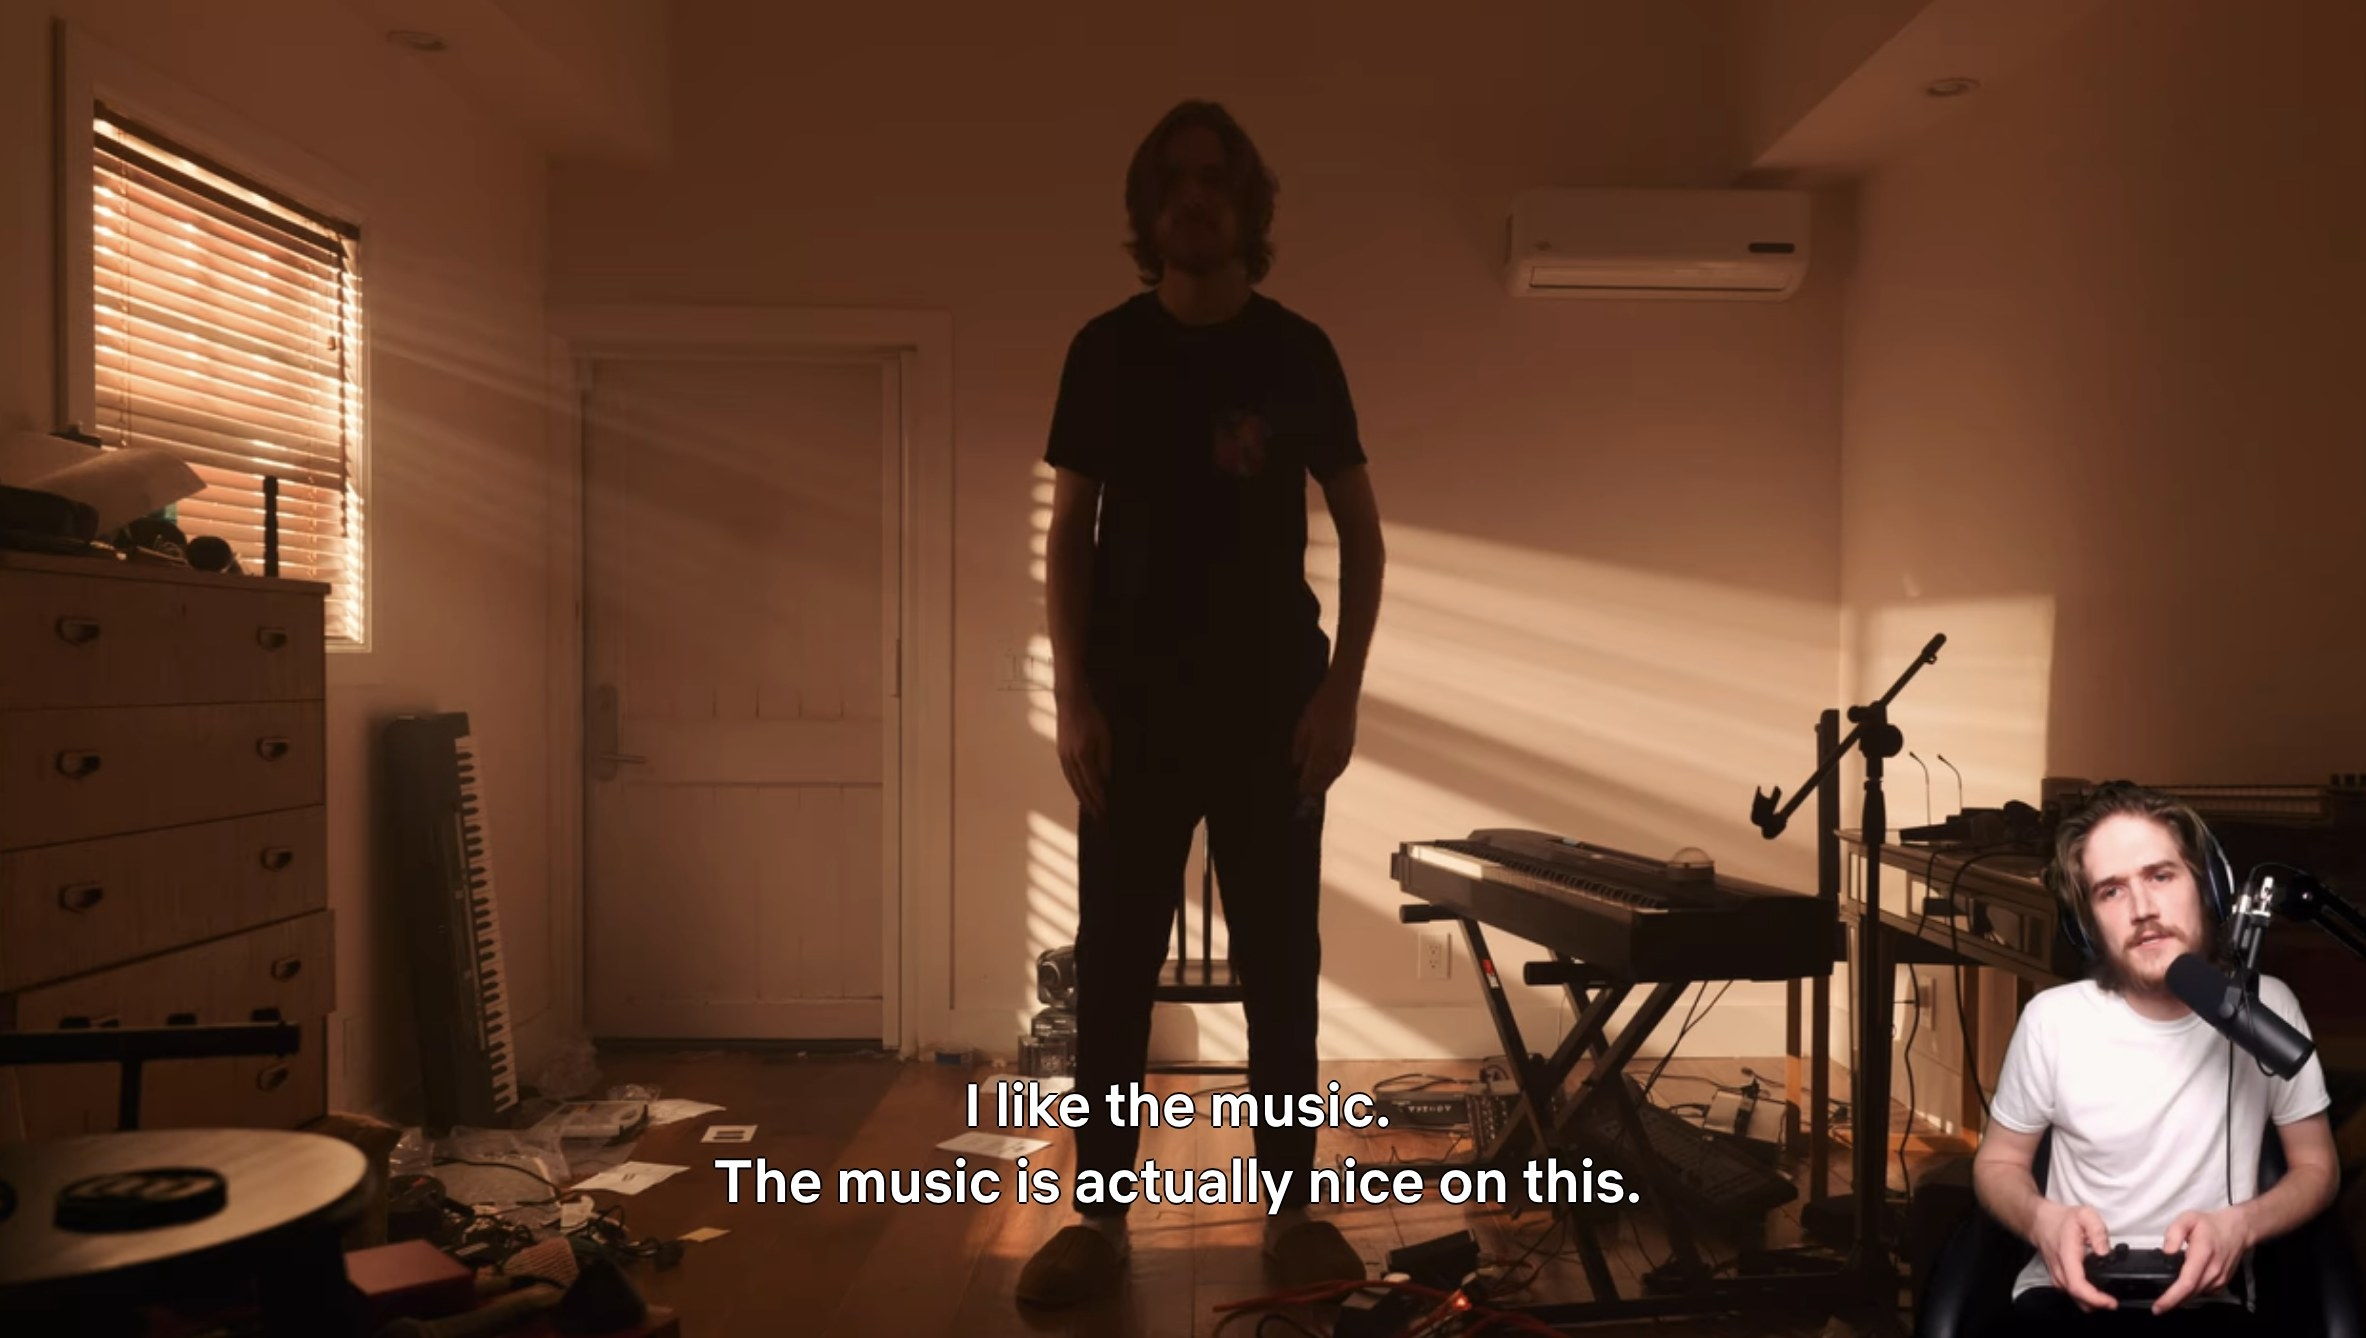 """Bo Burnham plays video game where he is the main character with the caption: """"I like the music. The music is actually nice on this"""""""